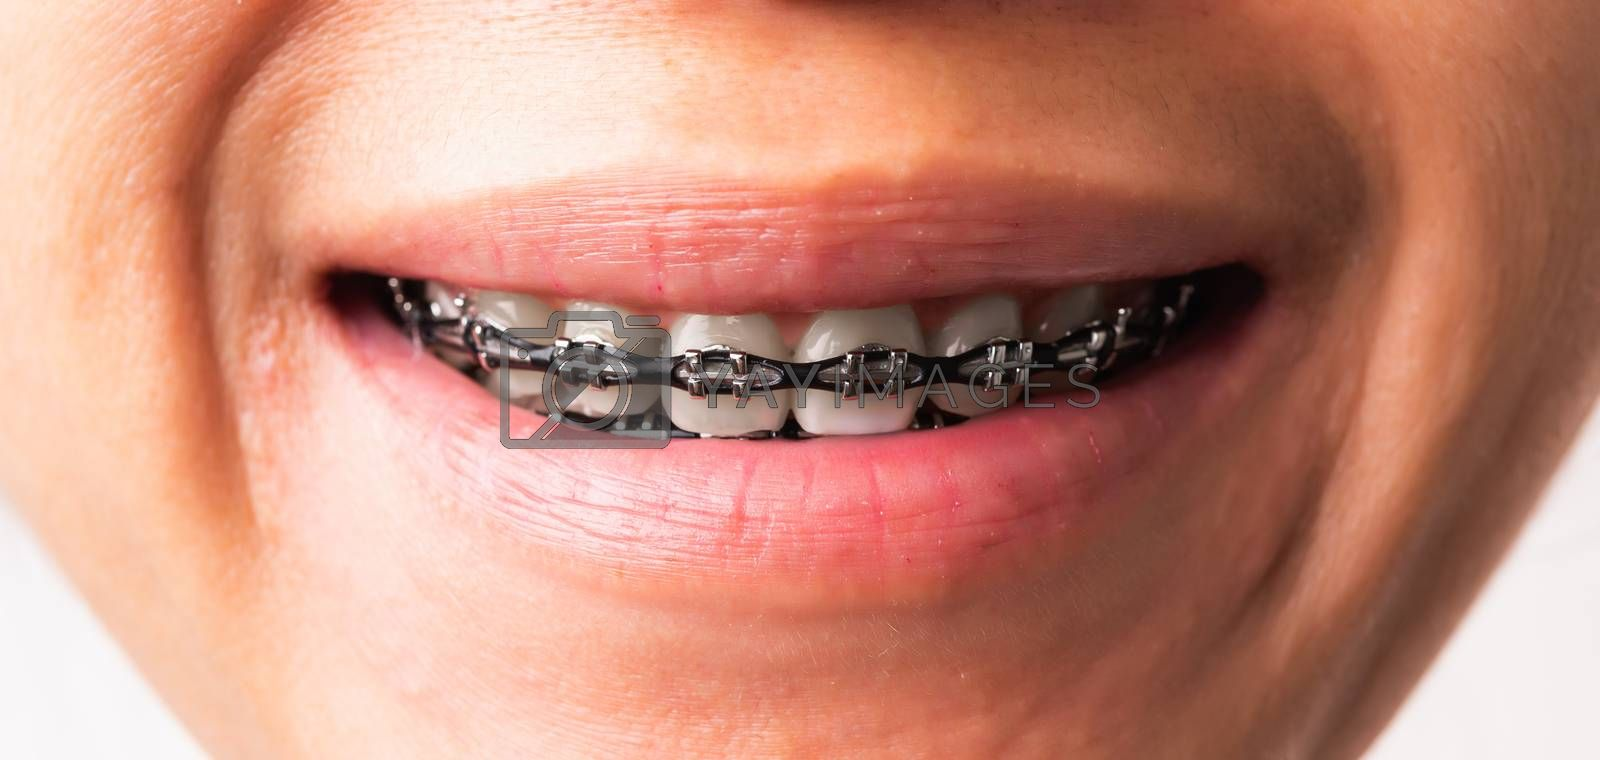 Woman smile show mouth with white teeth with black brackets brac by Sorapop